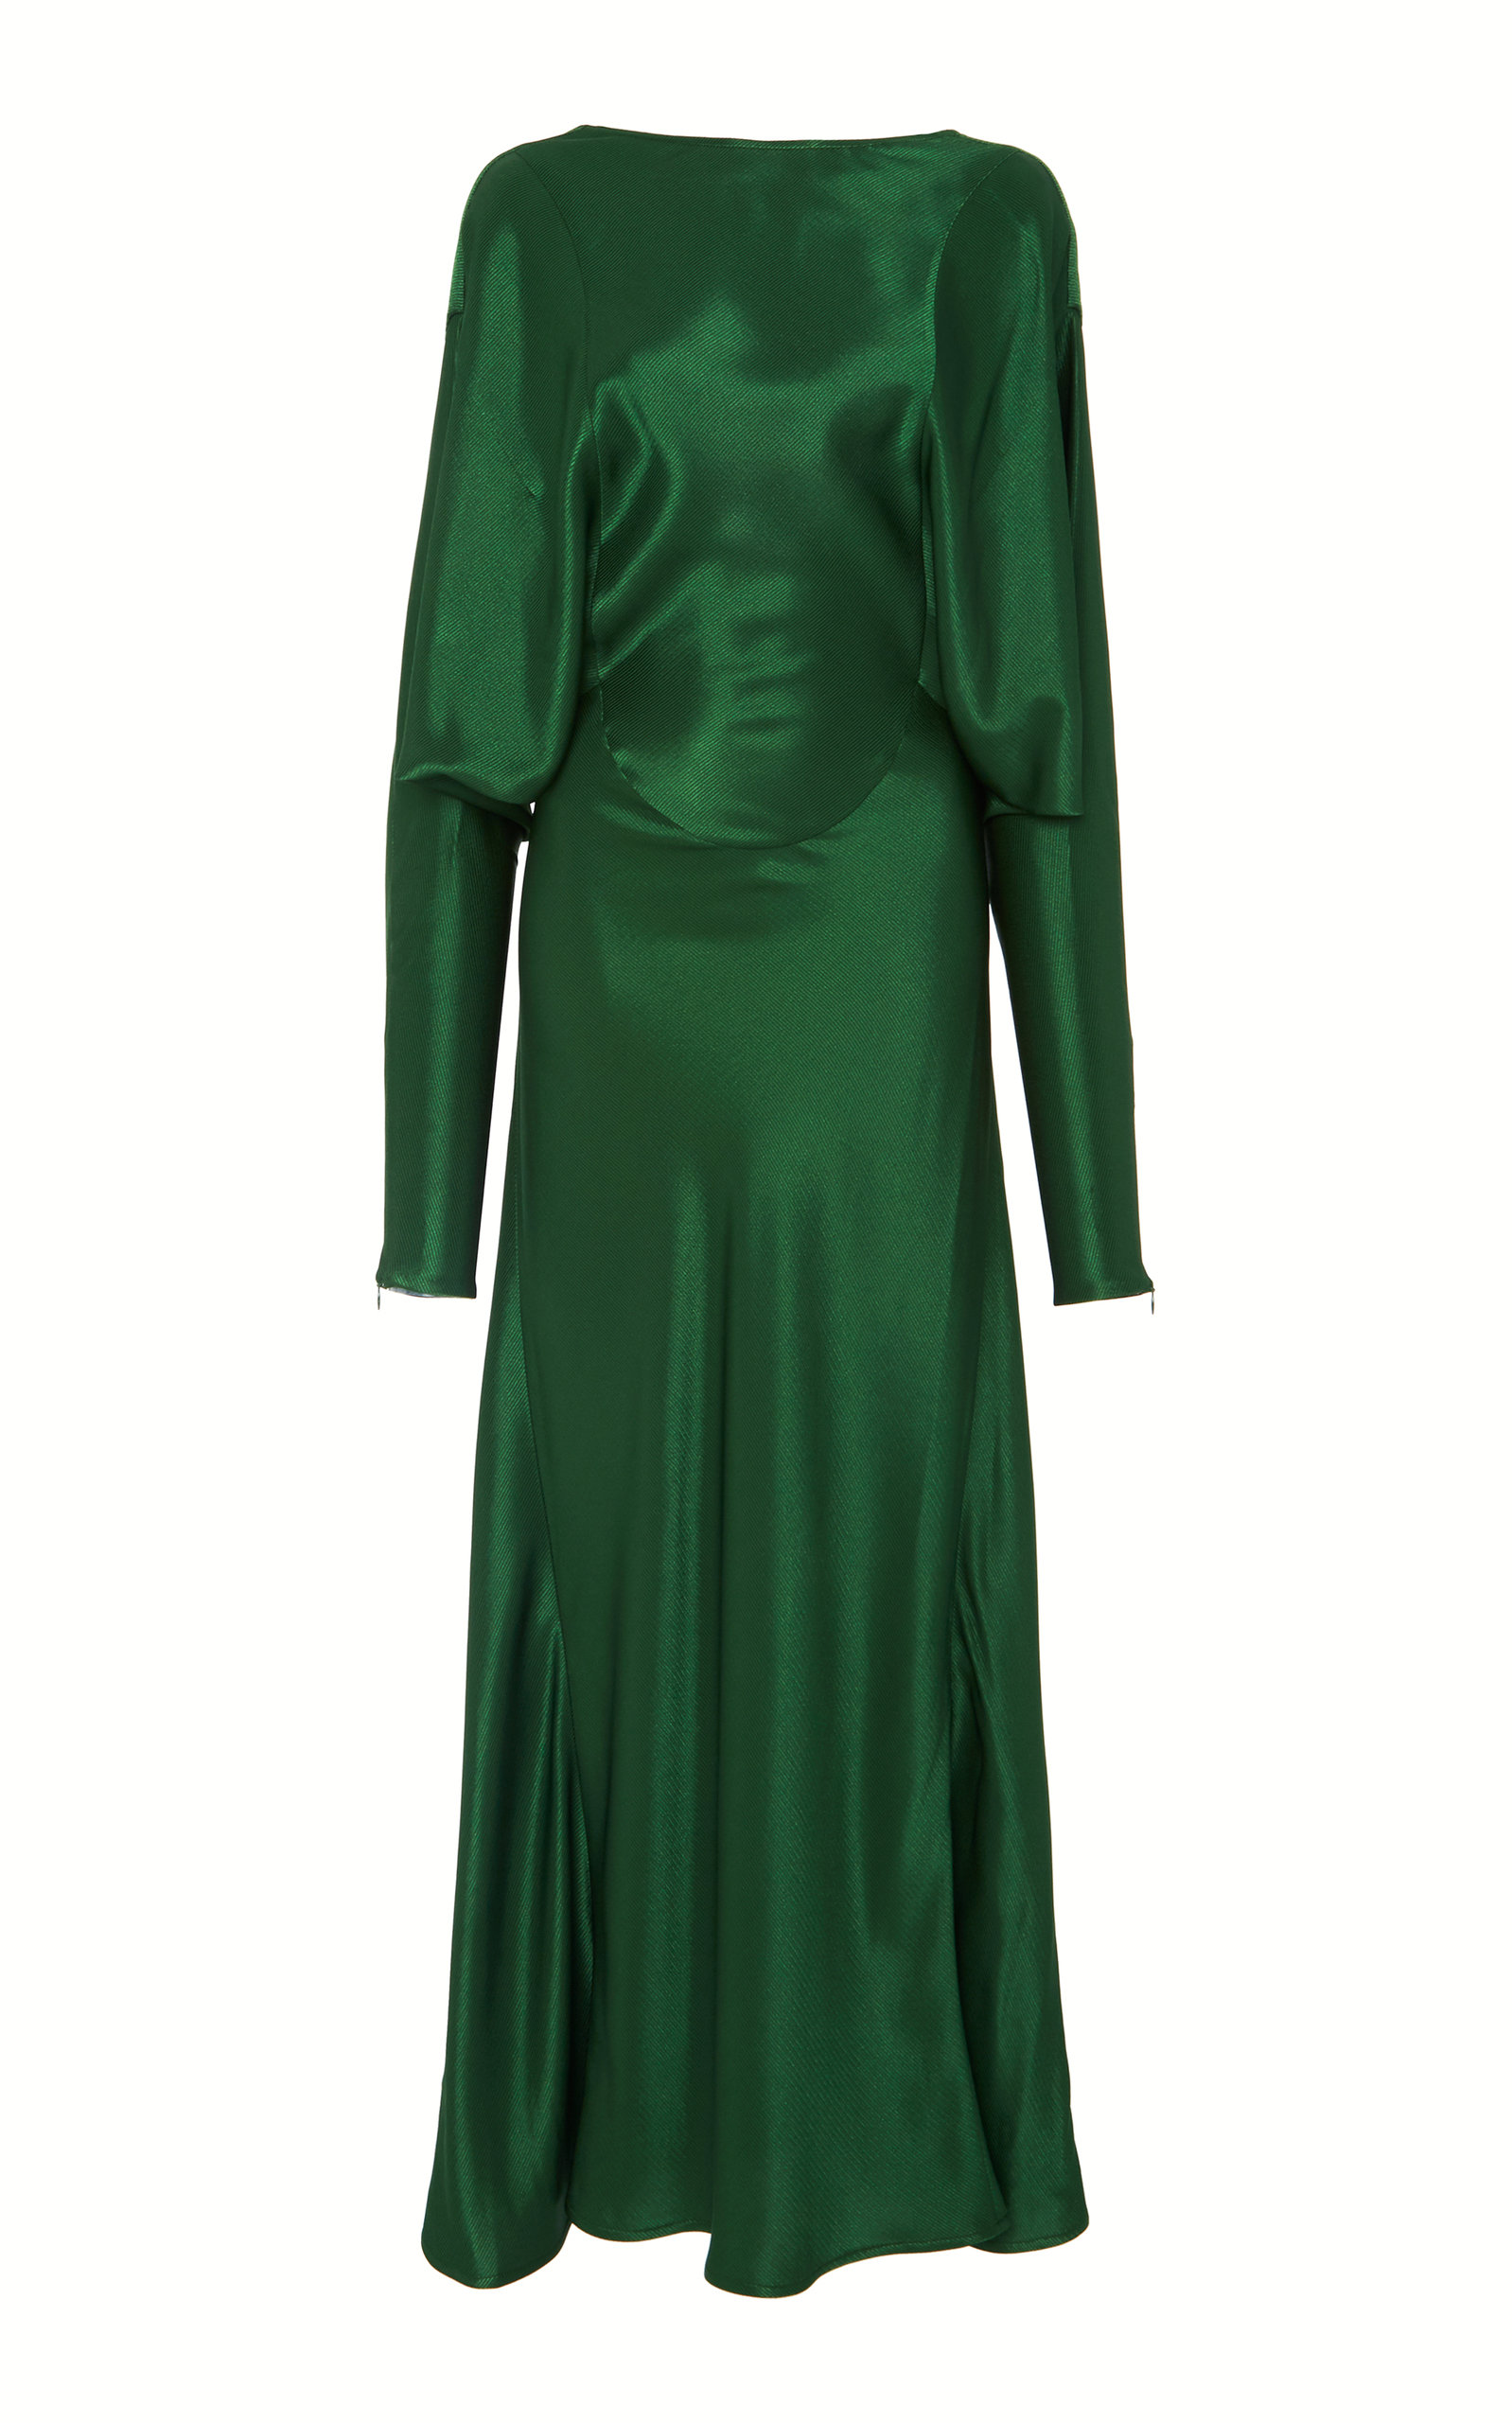 Open Back Drape Sleeve Dress Victoria Beckham Pre Order Cheap Price Looking For For Sale Outlet Enjoy New Sale Online Fashionable RY1oK